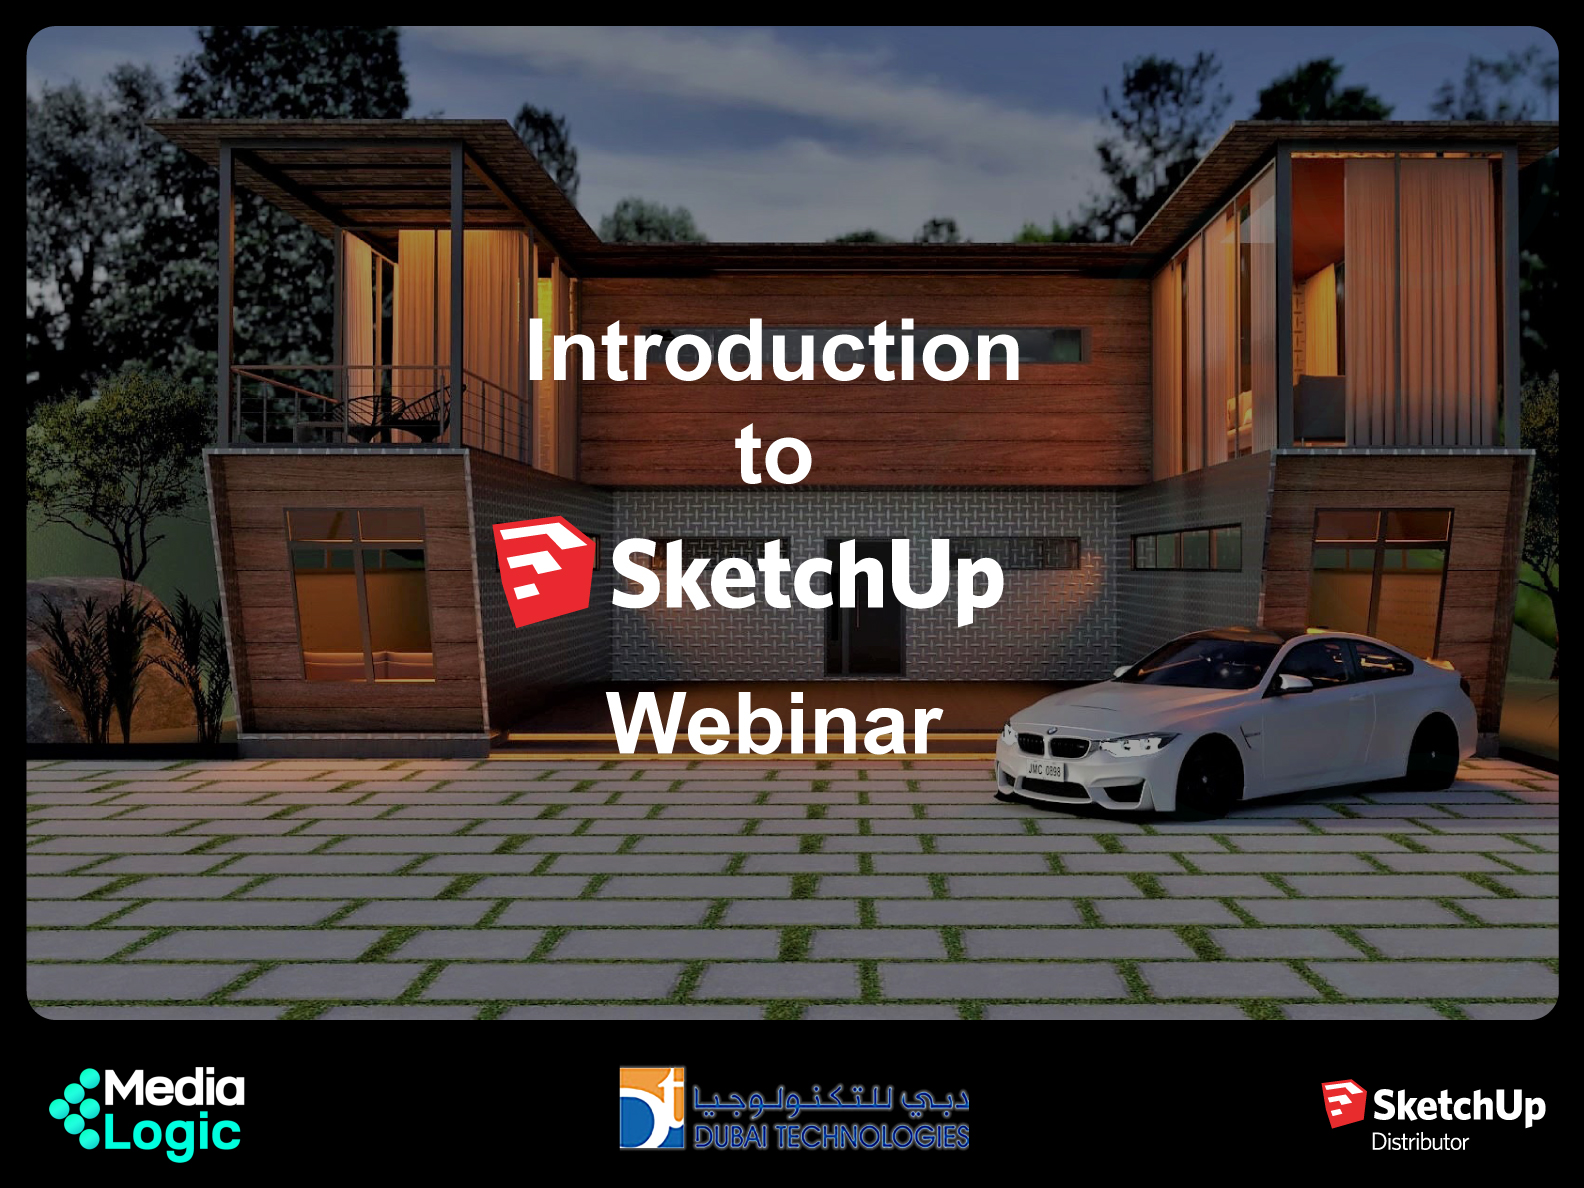 FREE WEBINAR: Introduction to SketchUp